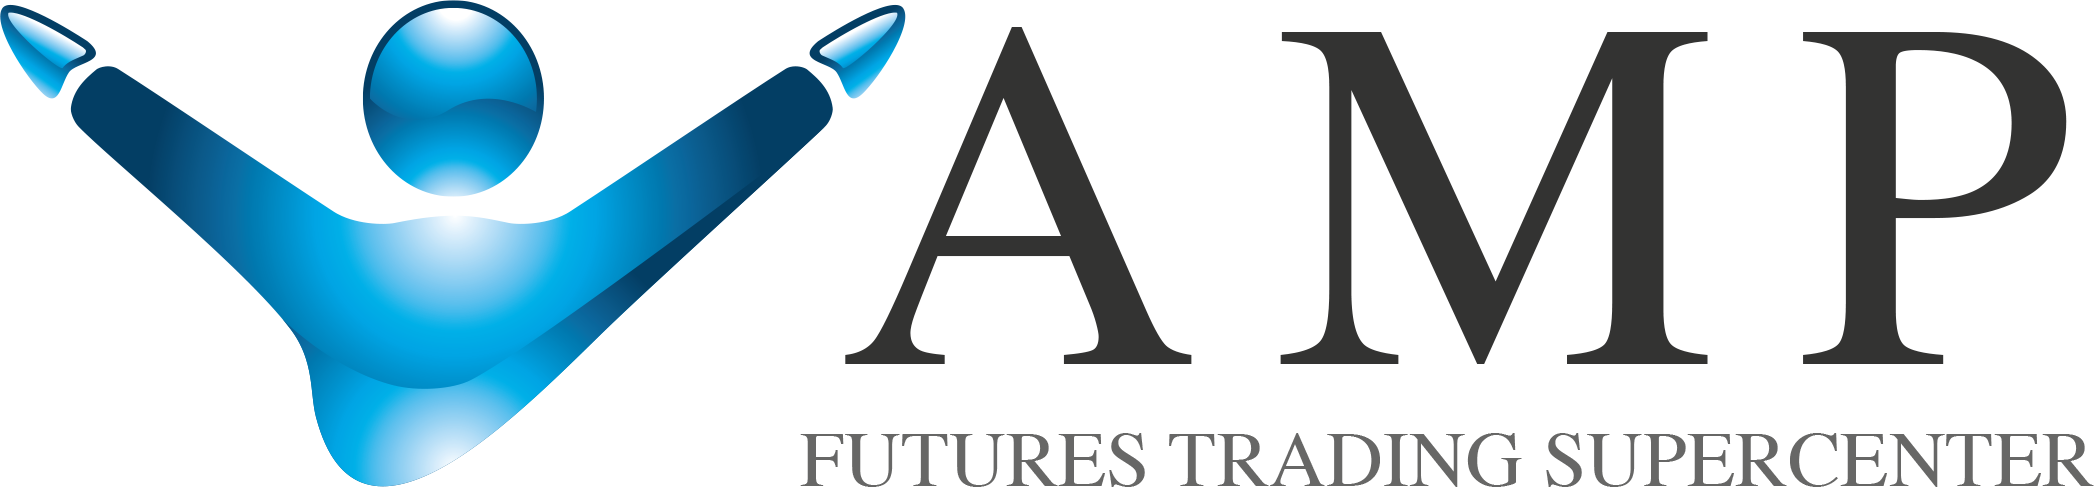 AMP Global | AMP Futures | AMP Clearing